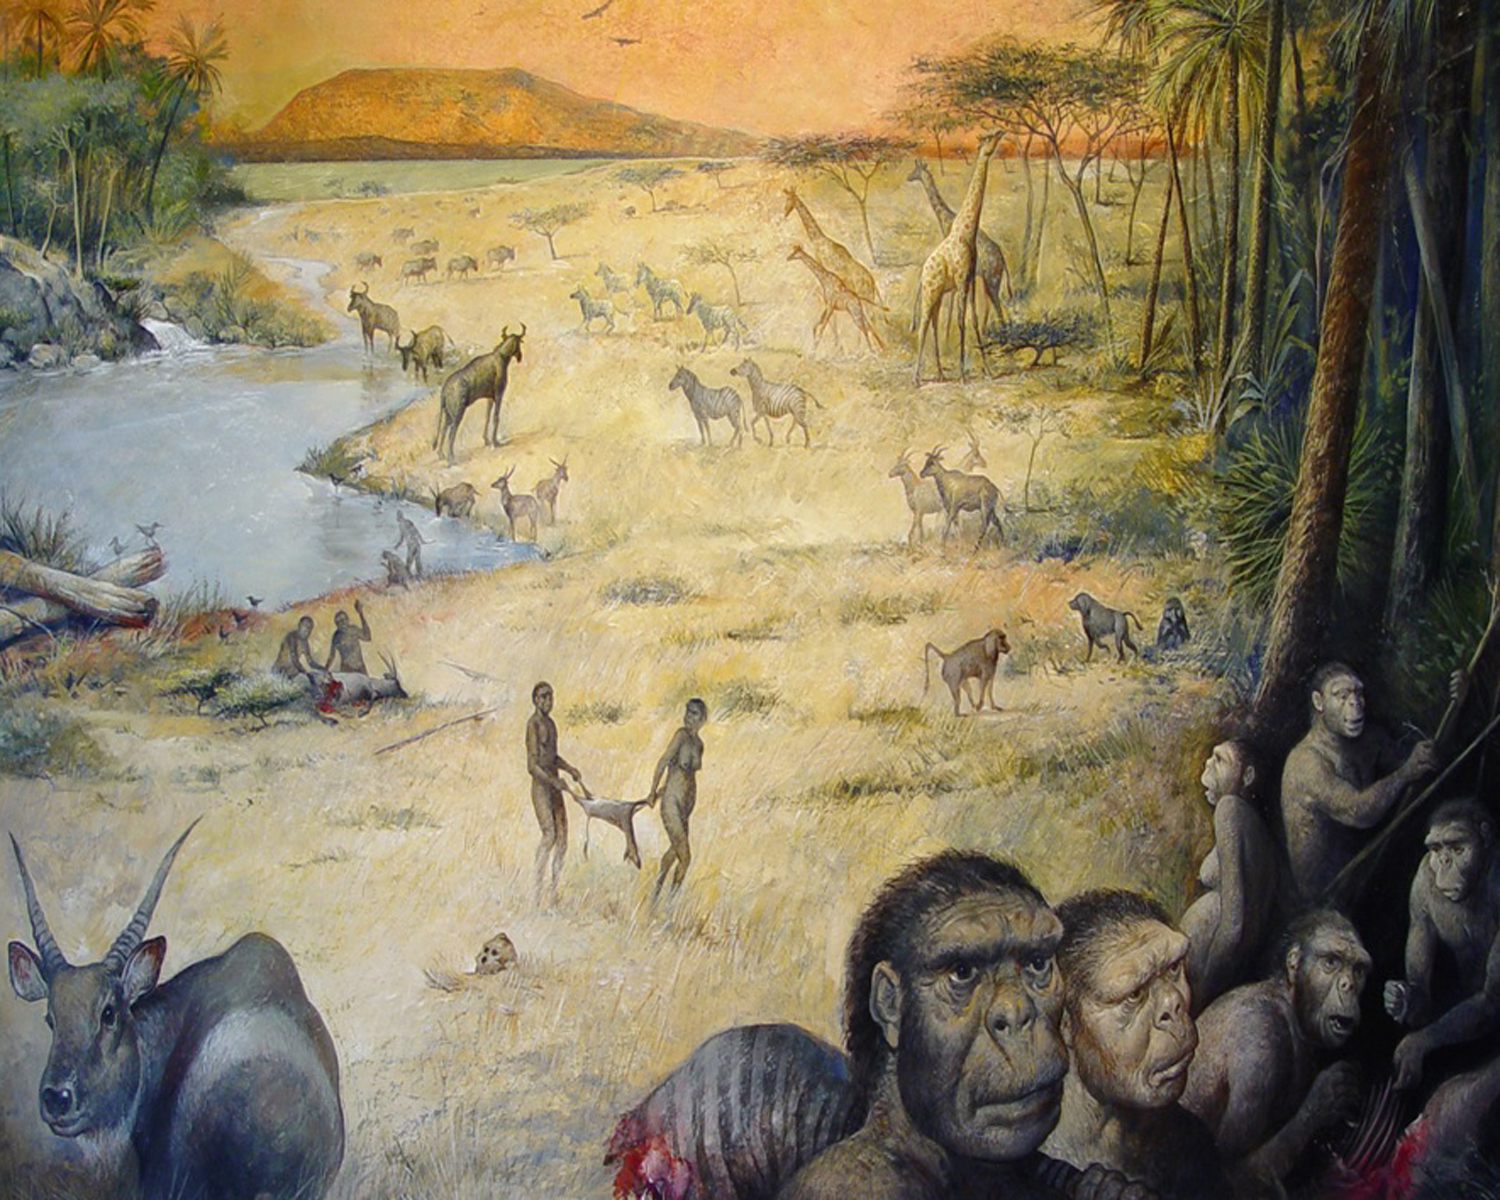 the location of the first humans on earth